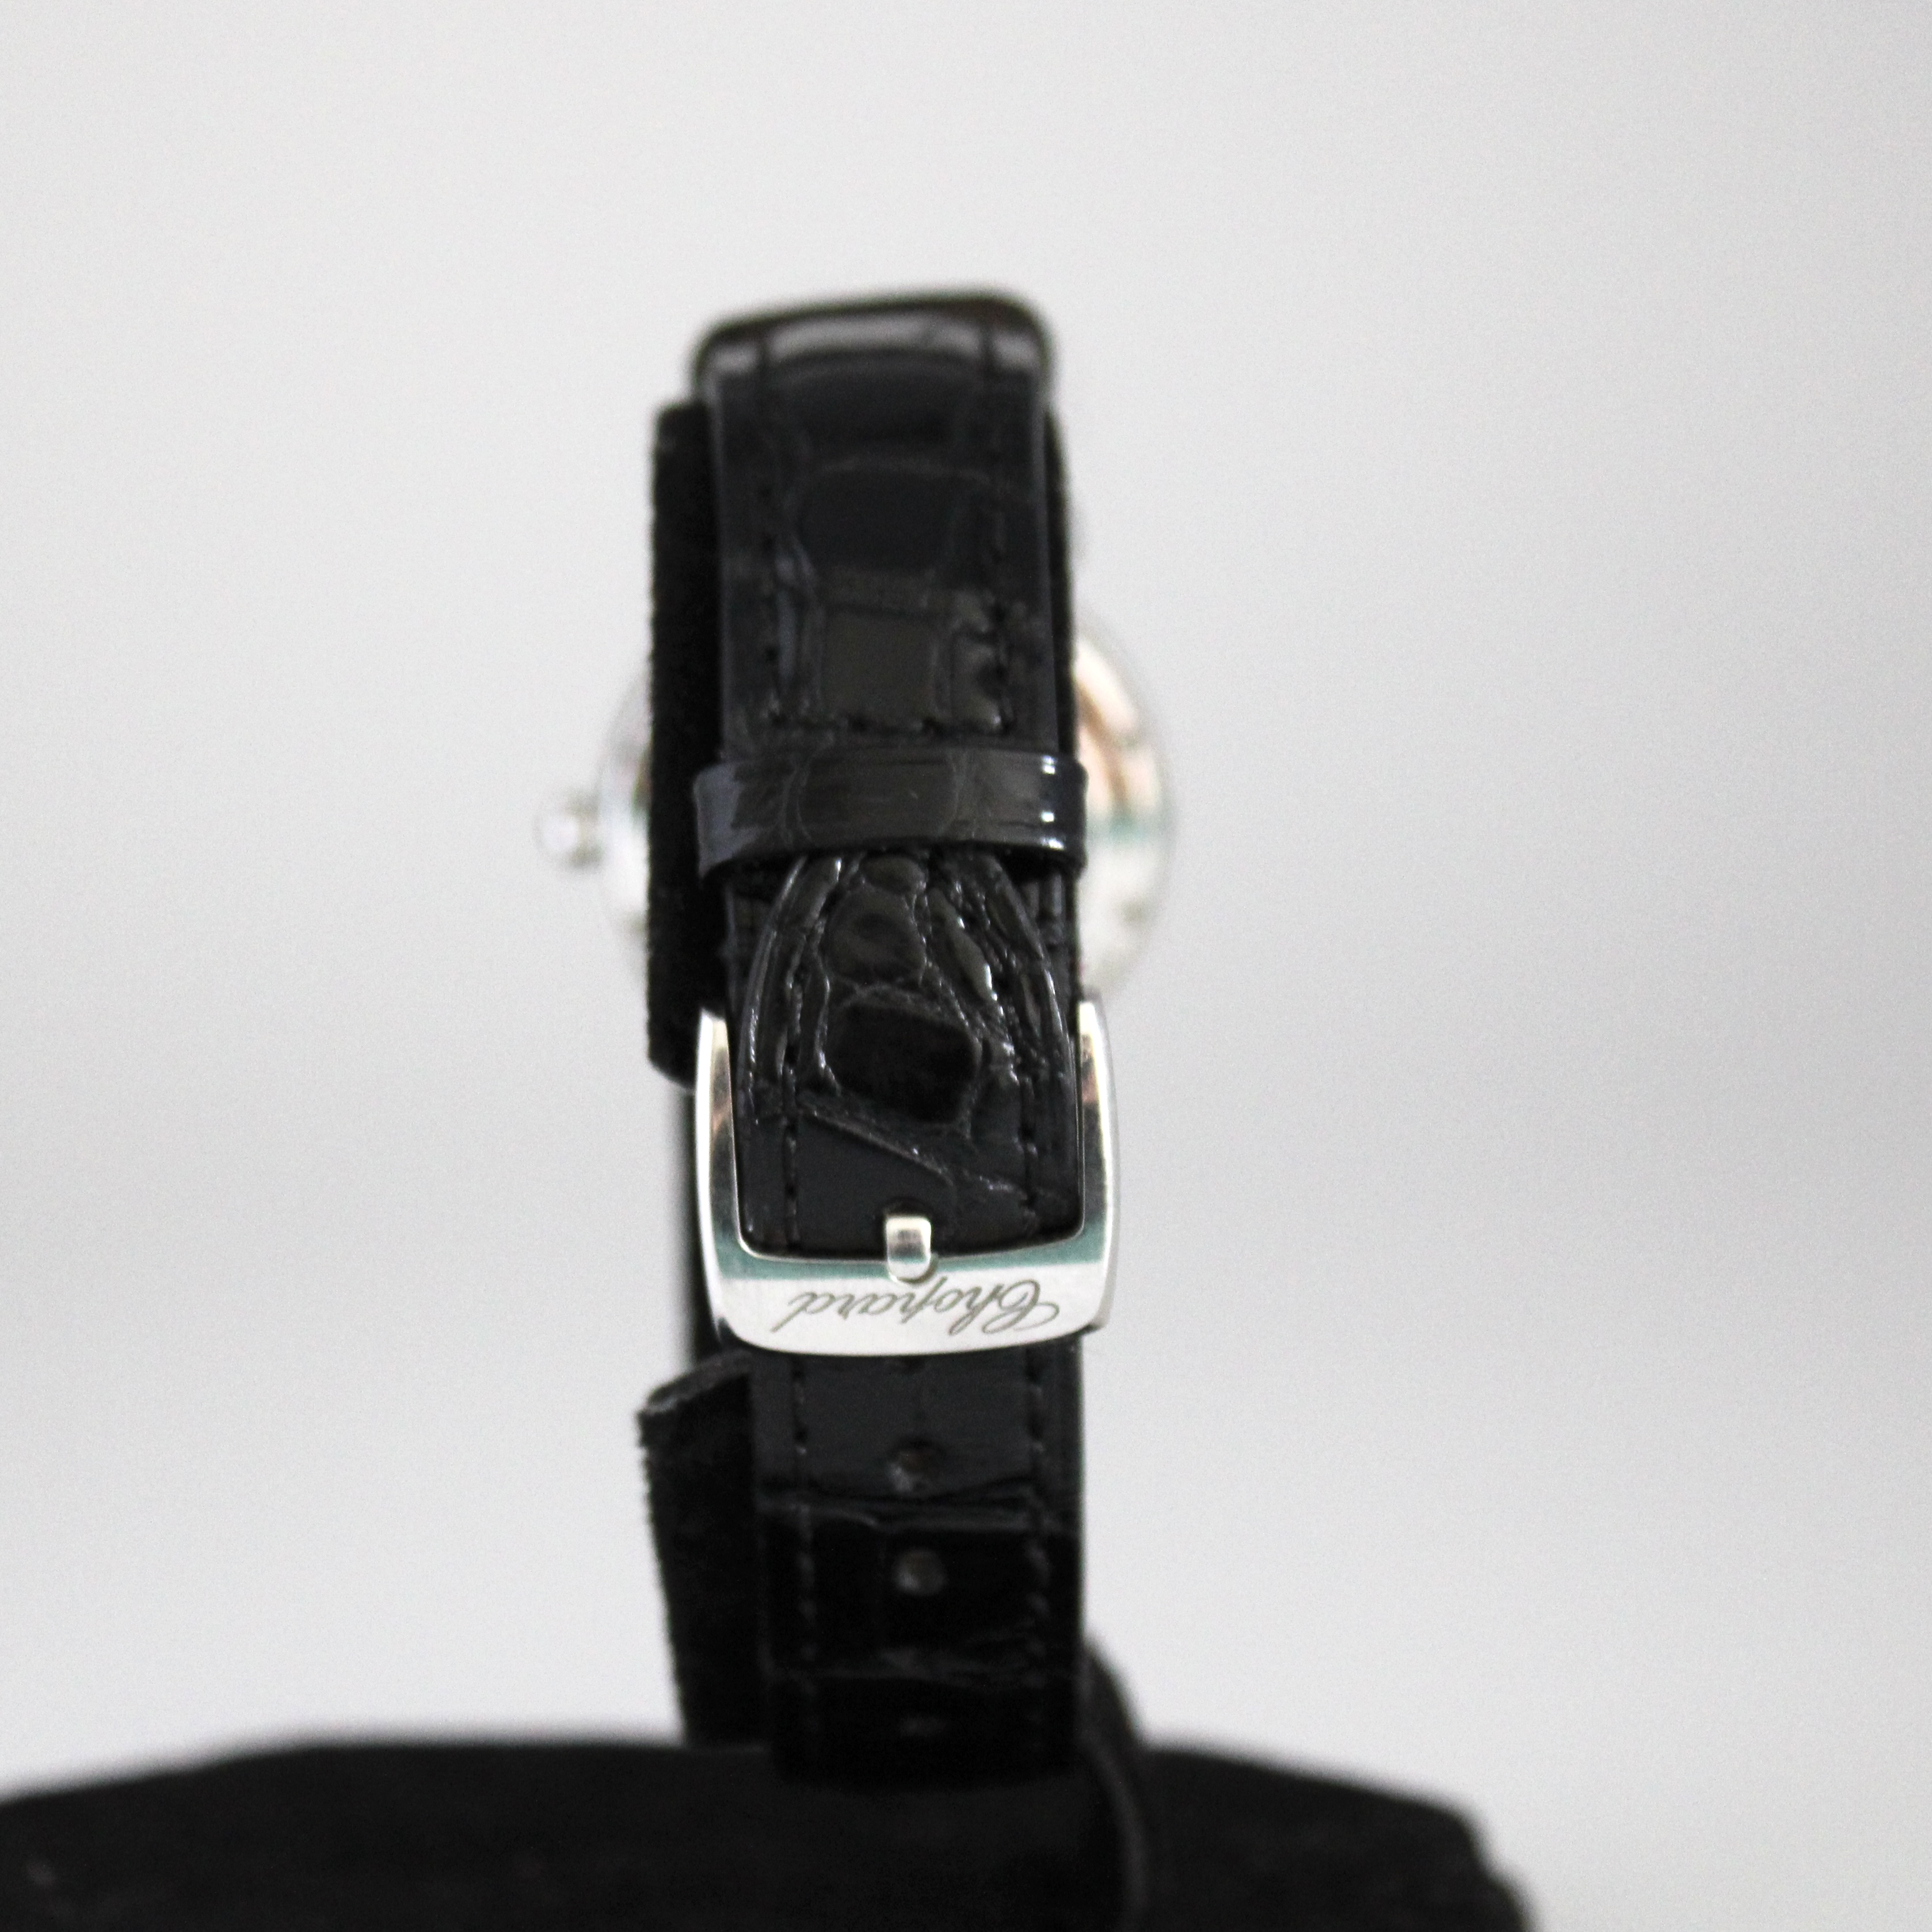 Chopard Imperiale ref 8541 - Image 4 of 4